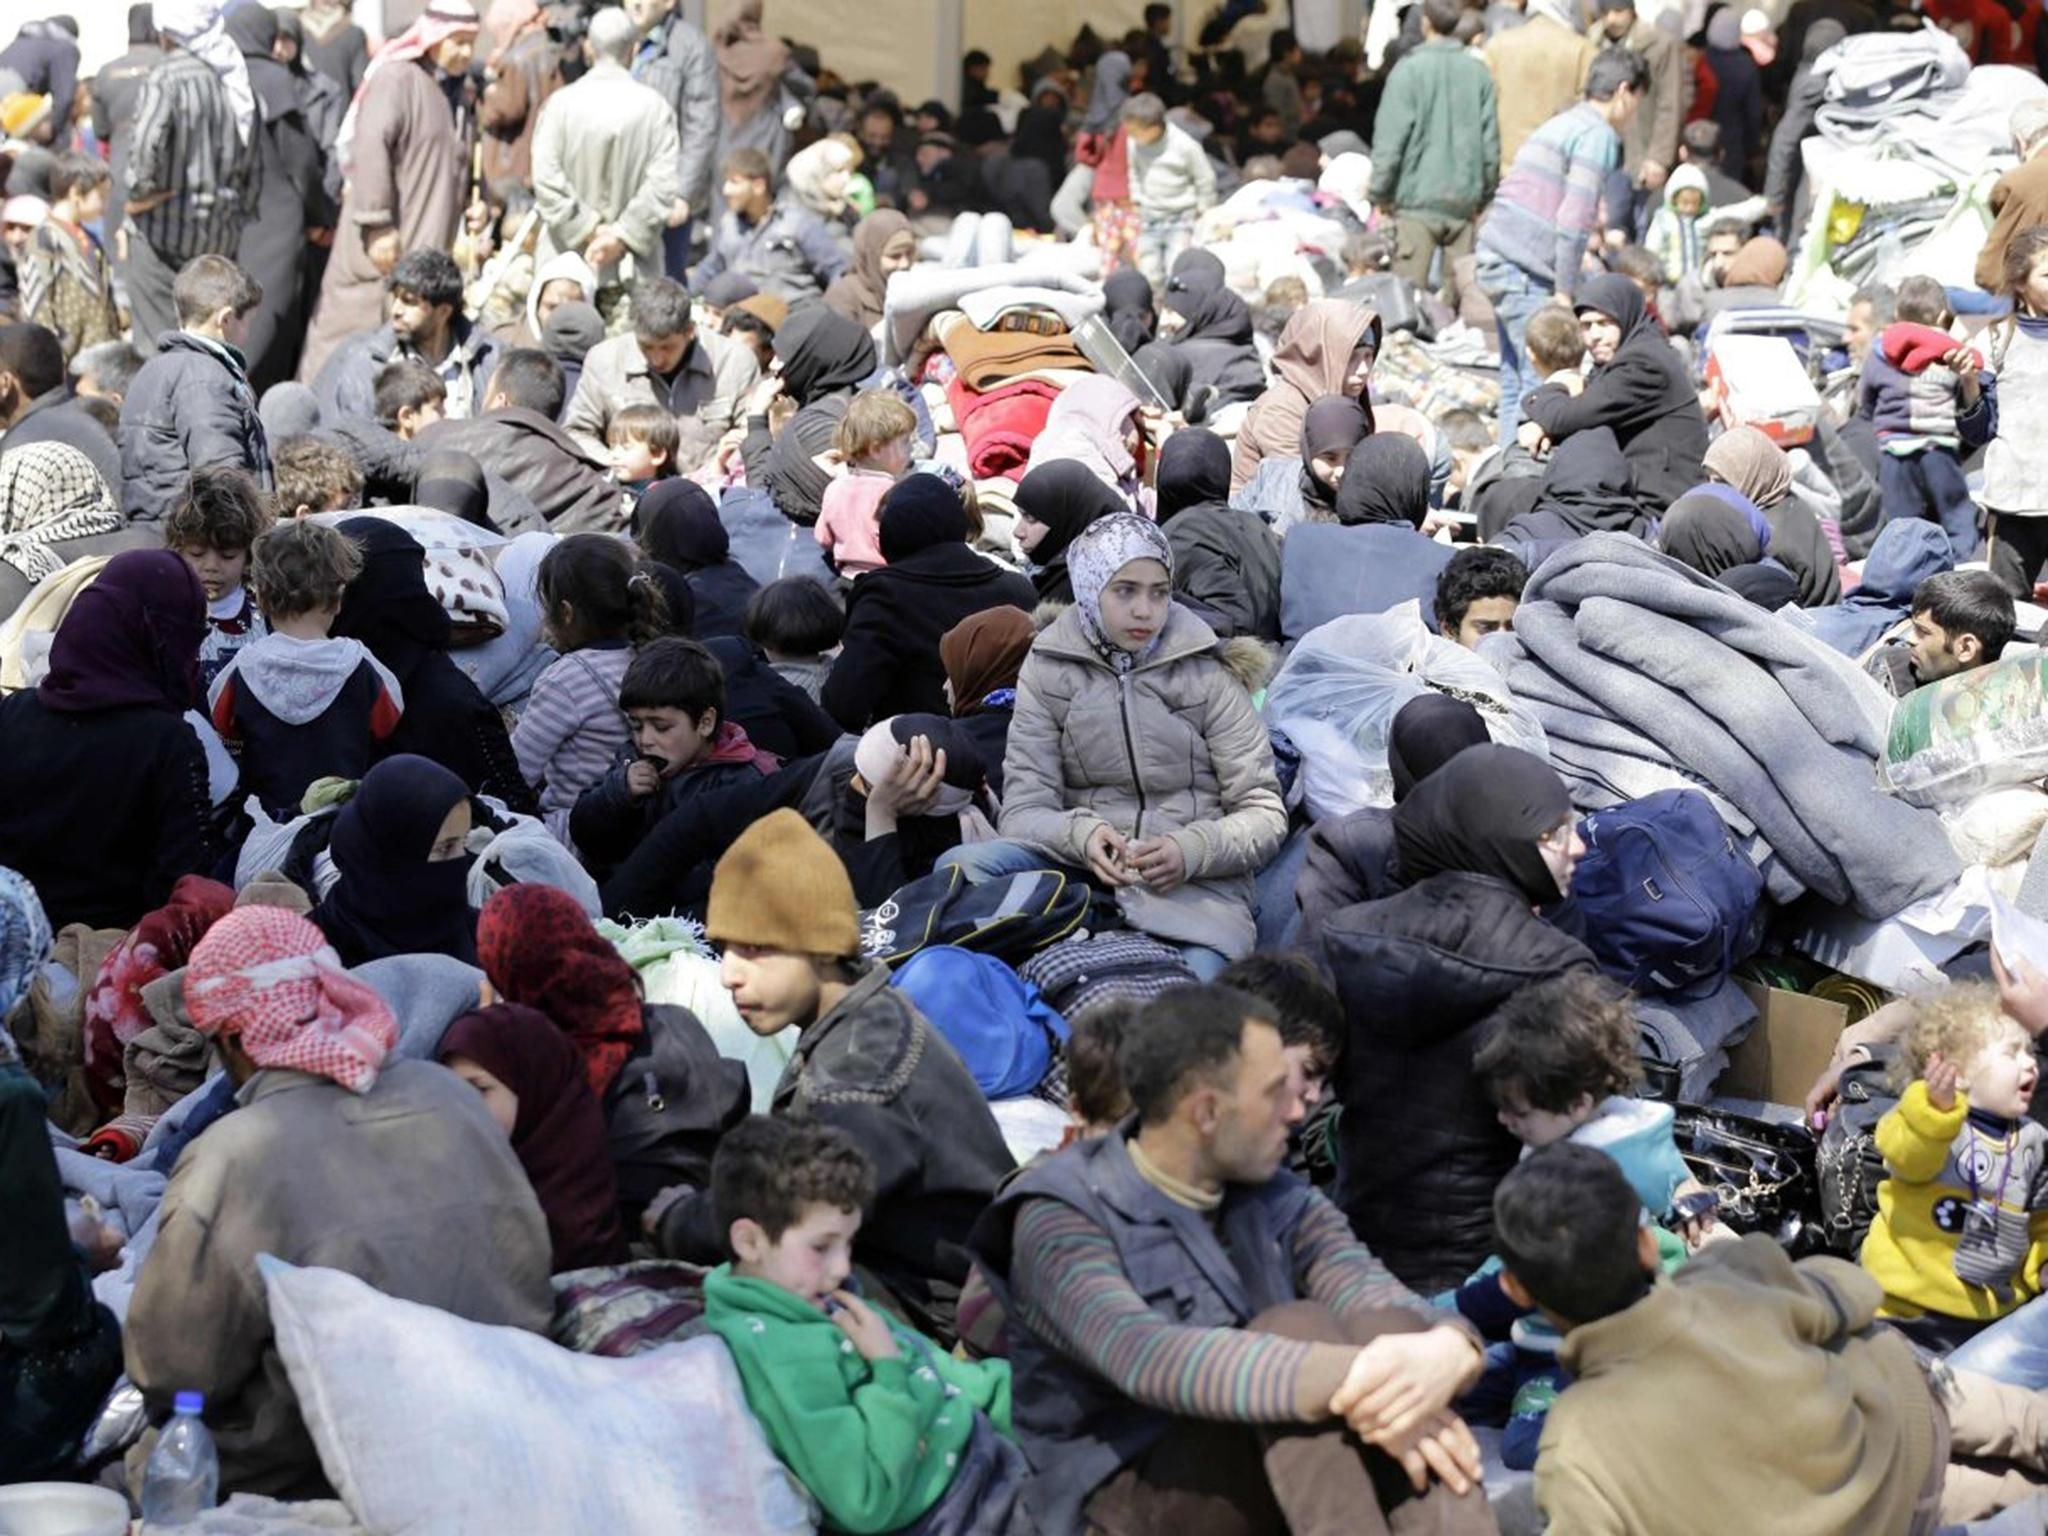 More than 11,000 flee Syria's besieged Eastern Ghouta